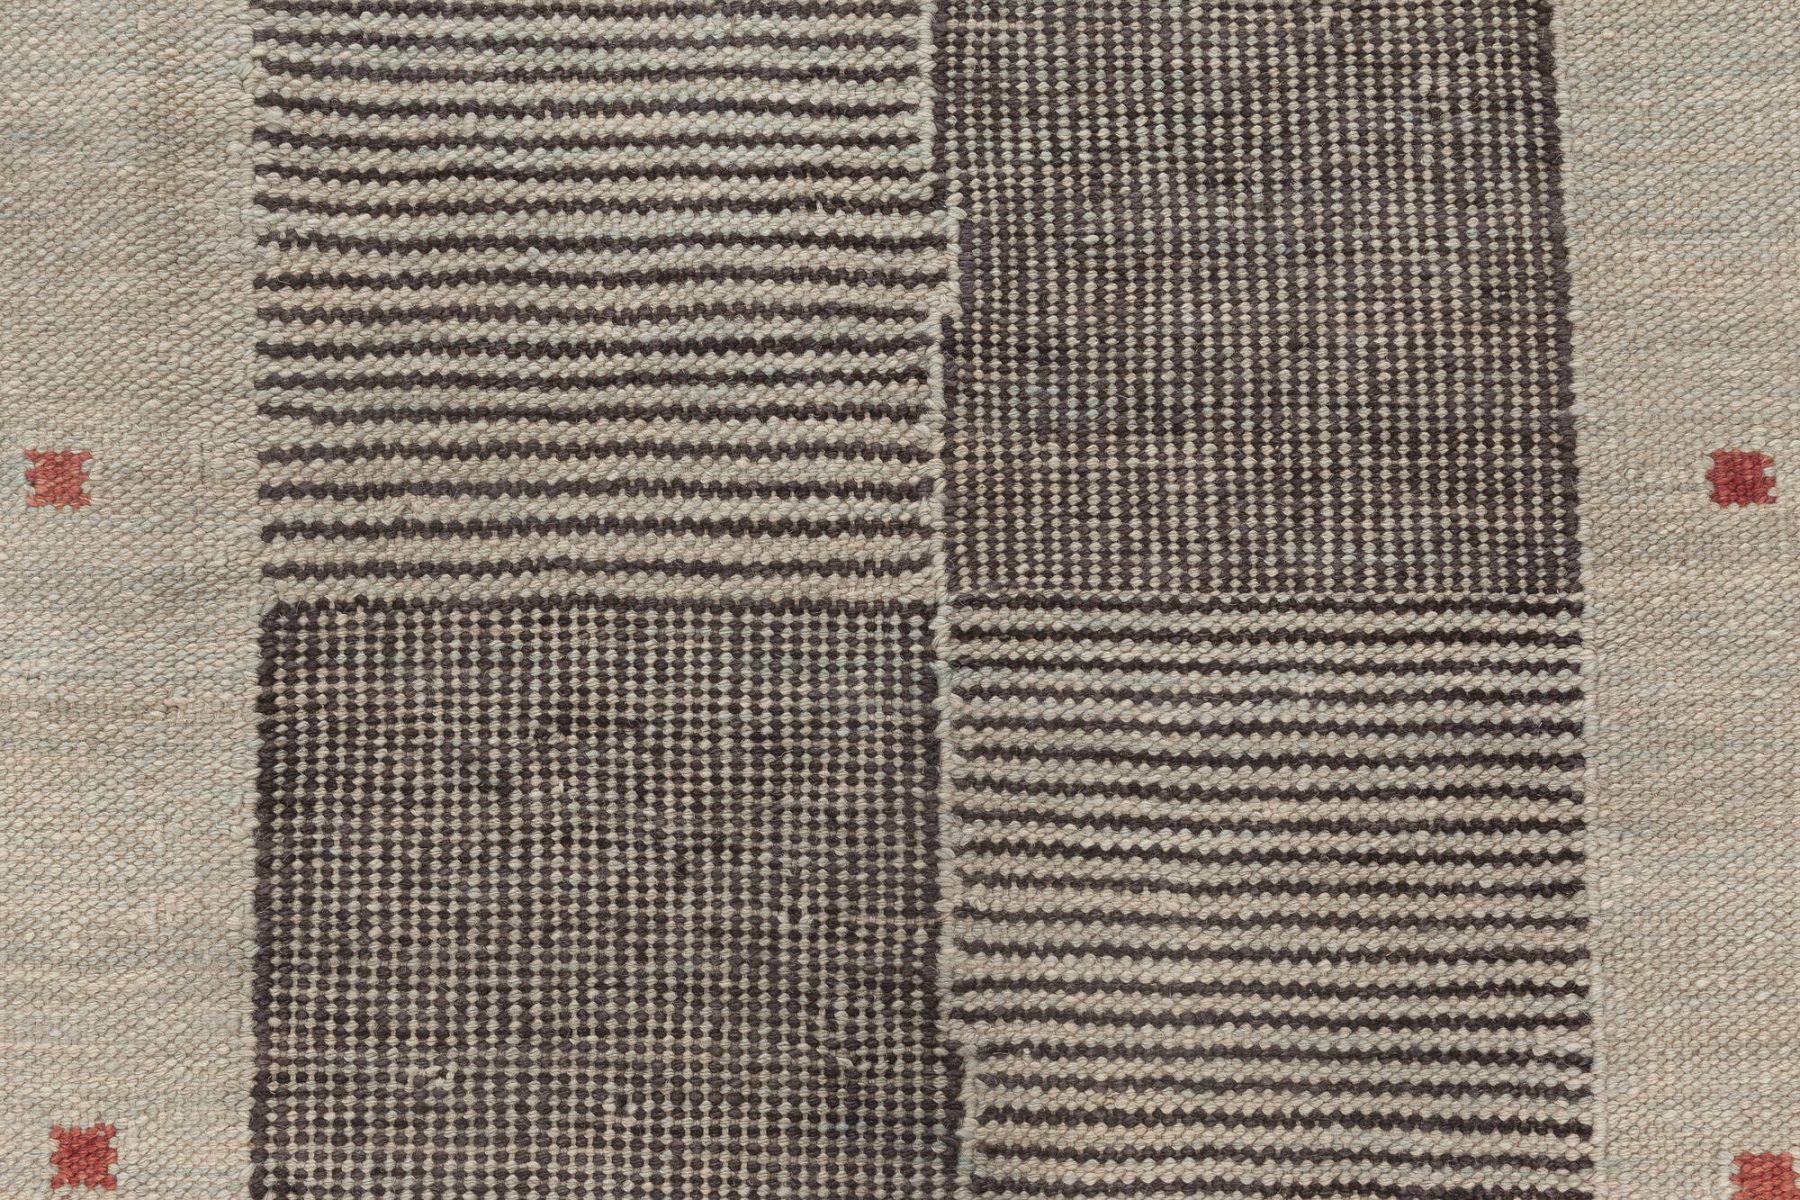 Contemporary Swedish Style Beige, Black and Red Flat-Weave Wool Runner N12056